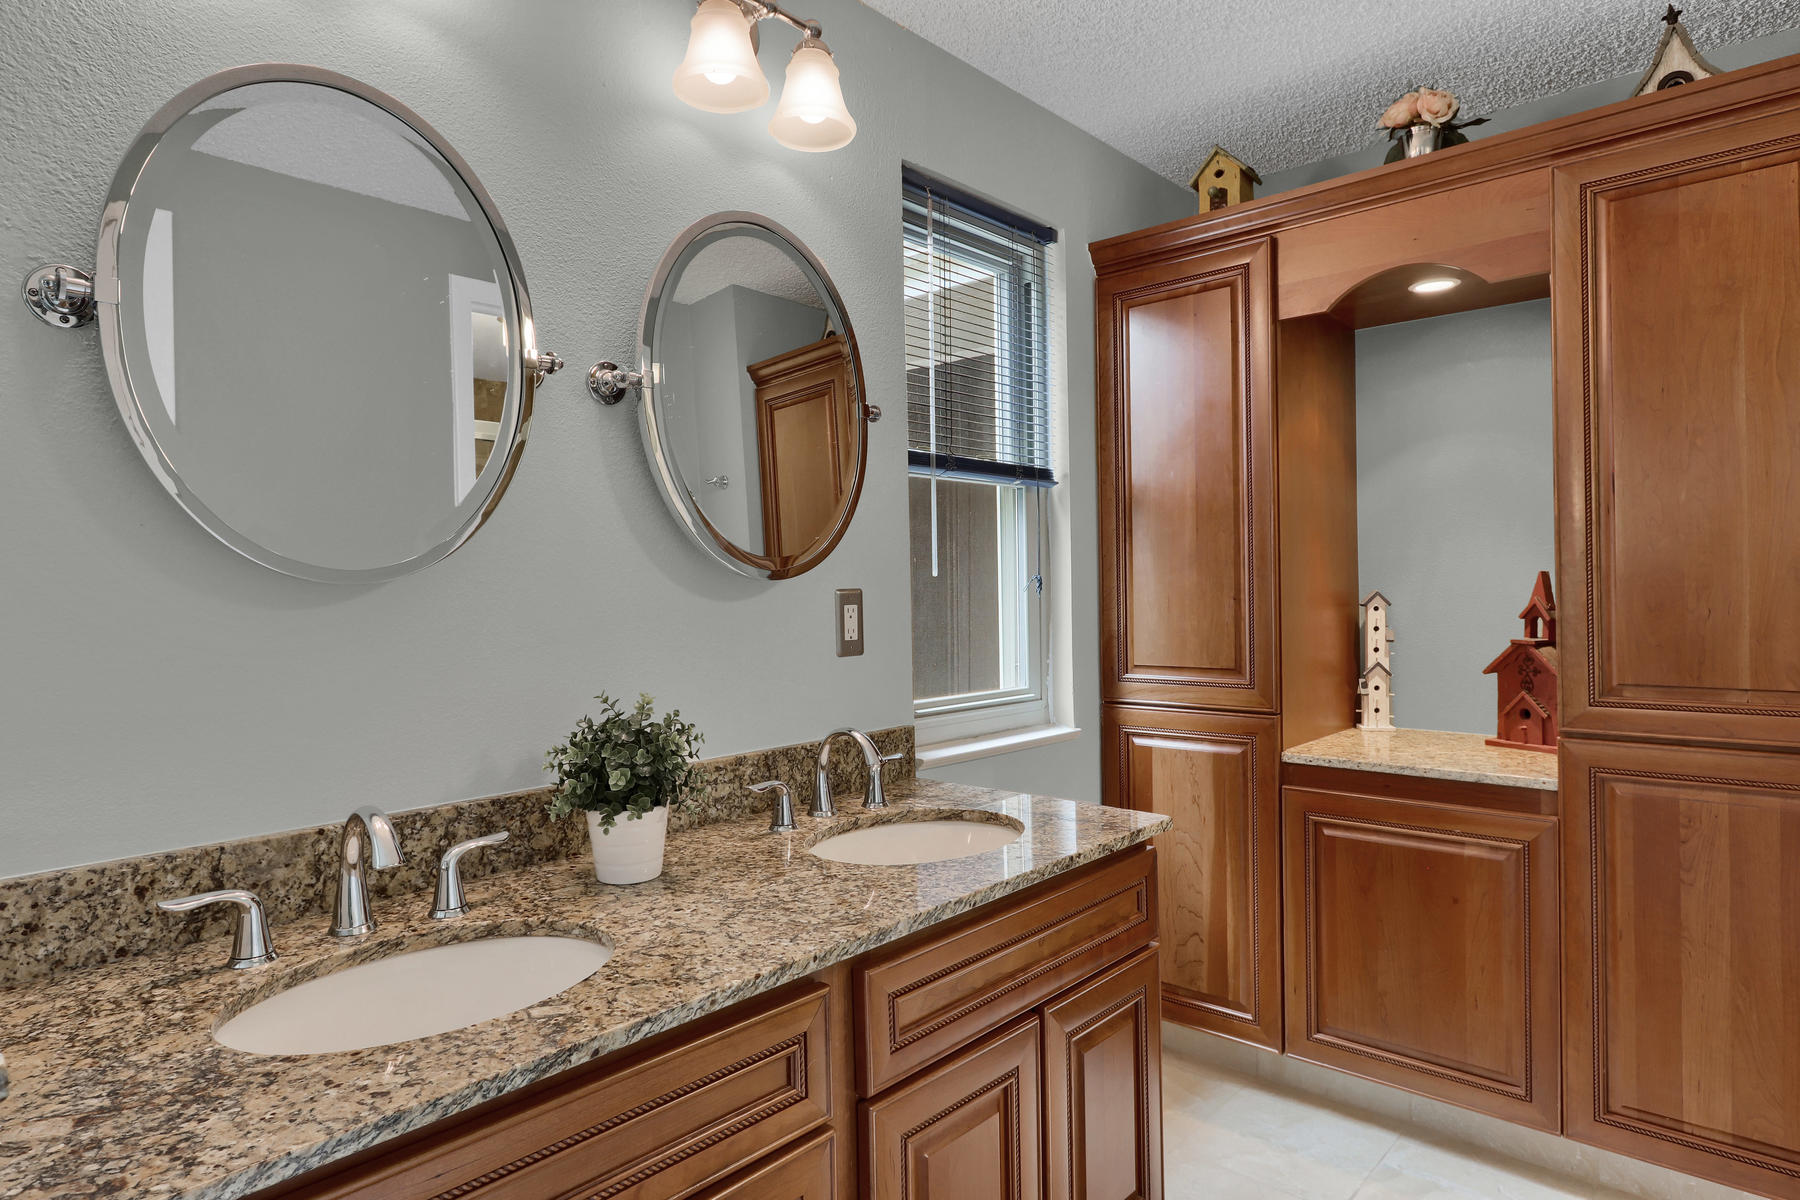 8490 Independence Way Arvada-013-023-Bathroom-MLS_Size.jpg